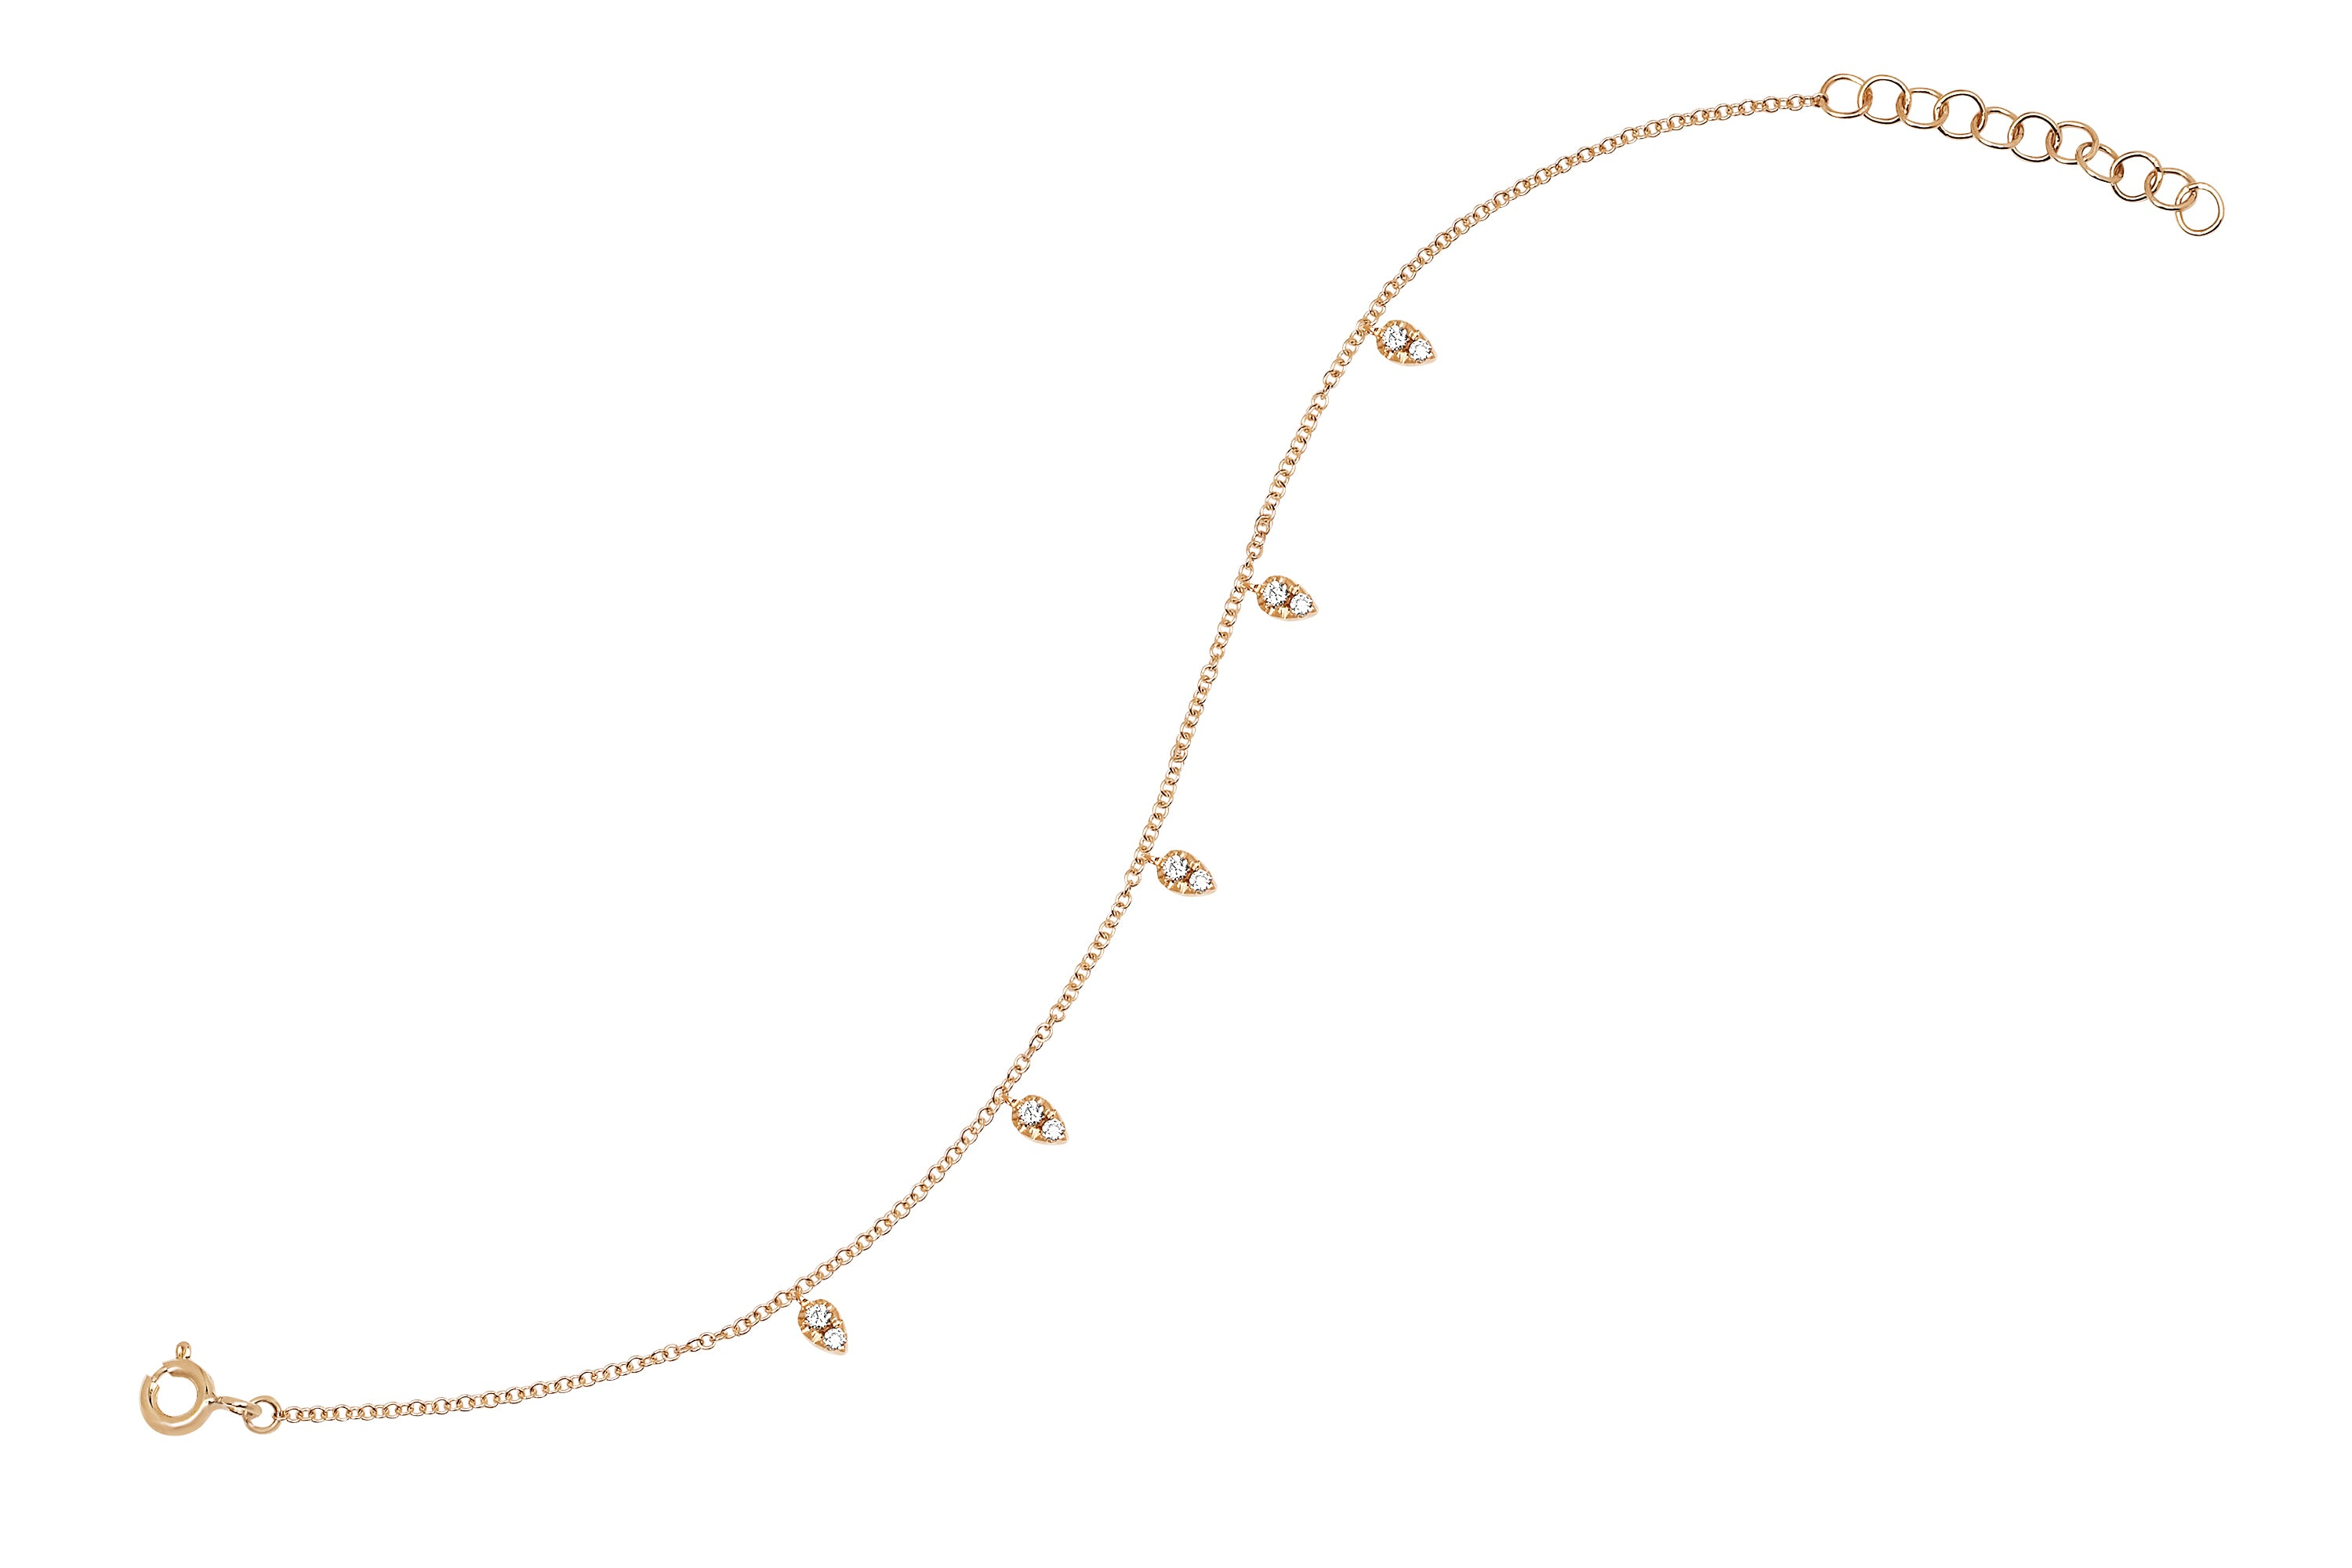 Diamond 5 Mini Teardrop Chain Anklet